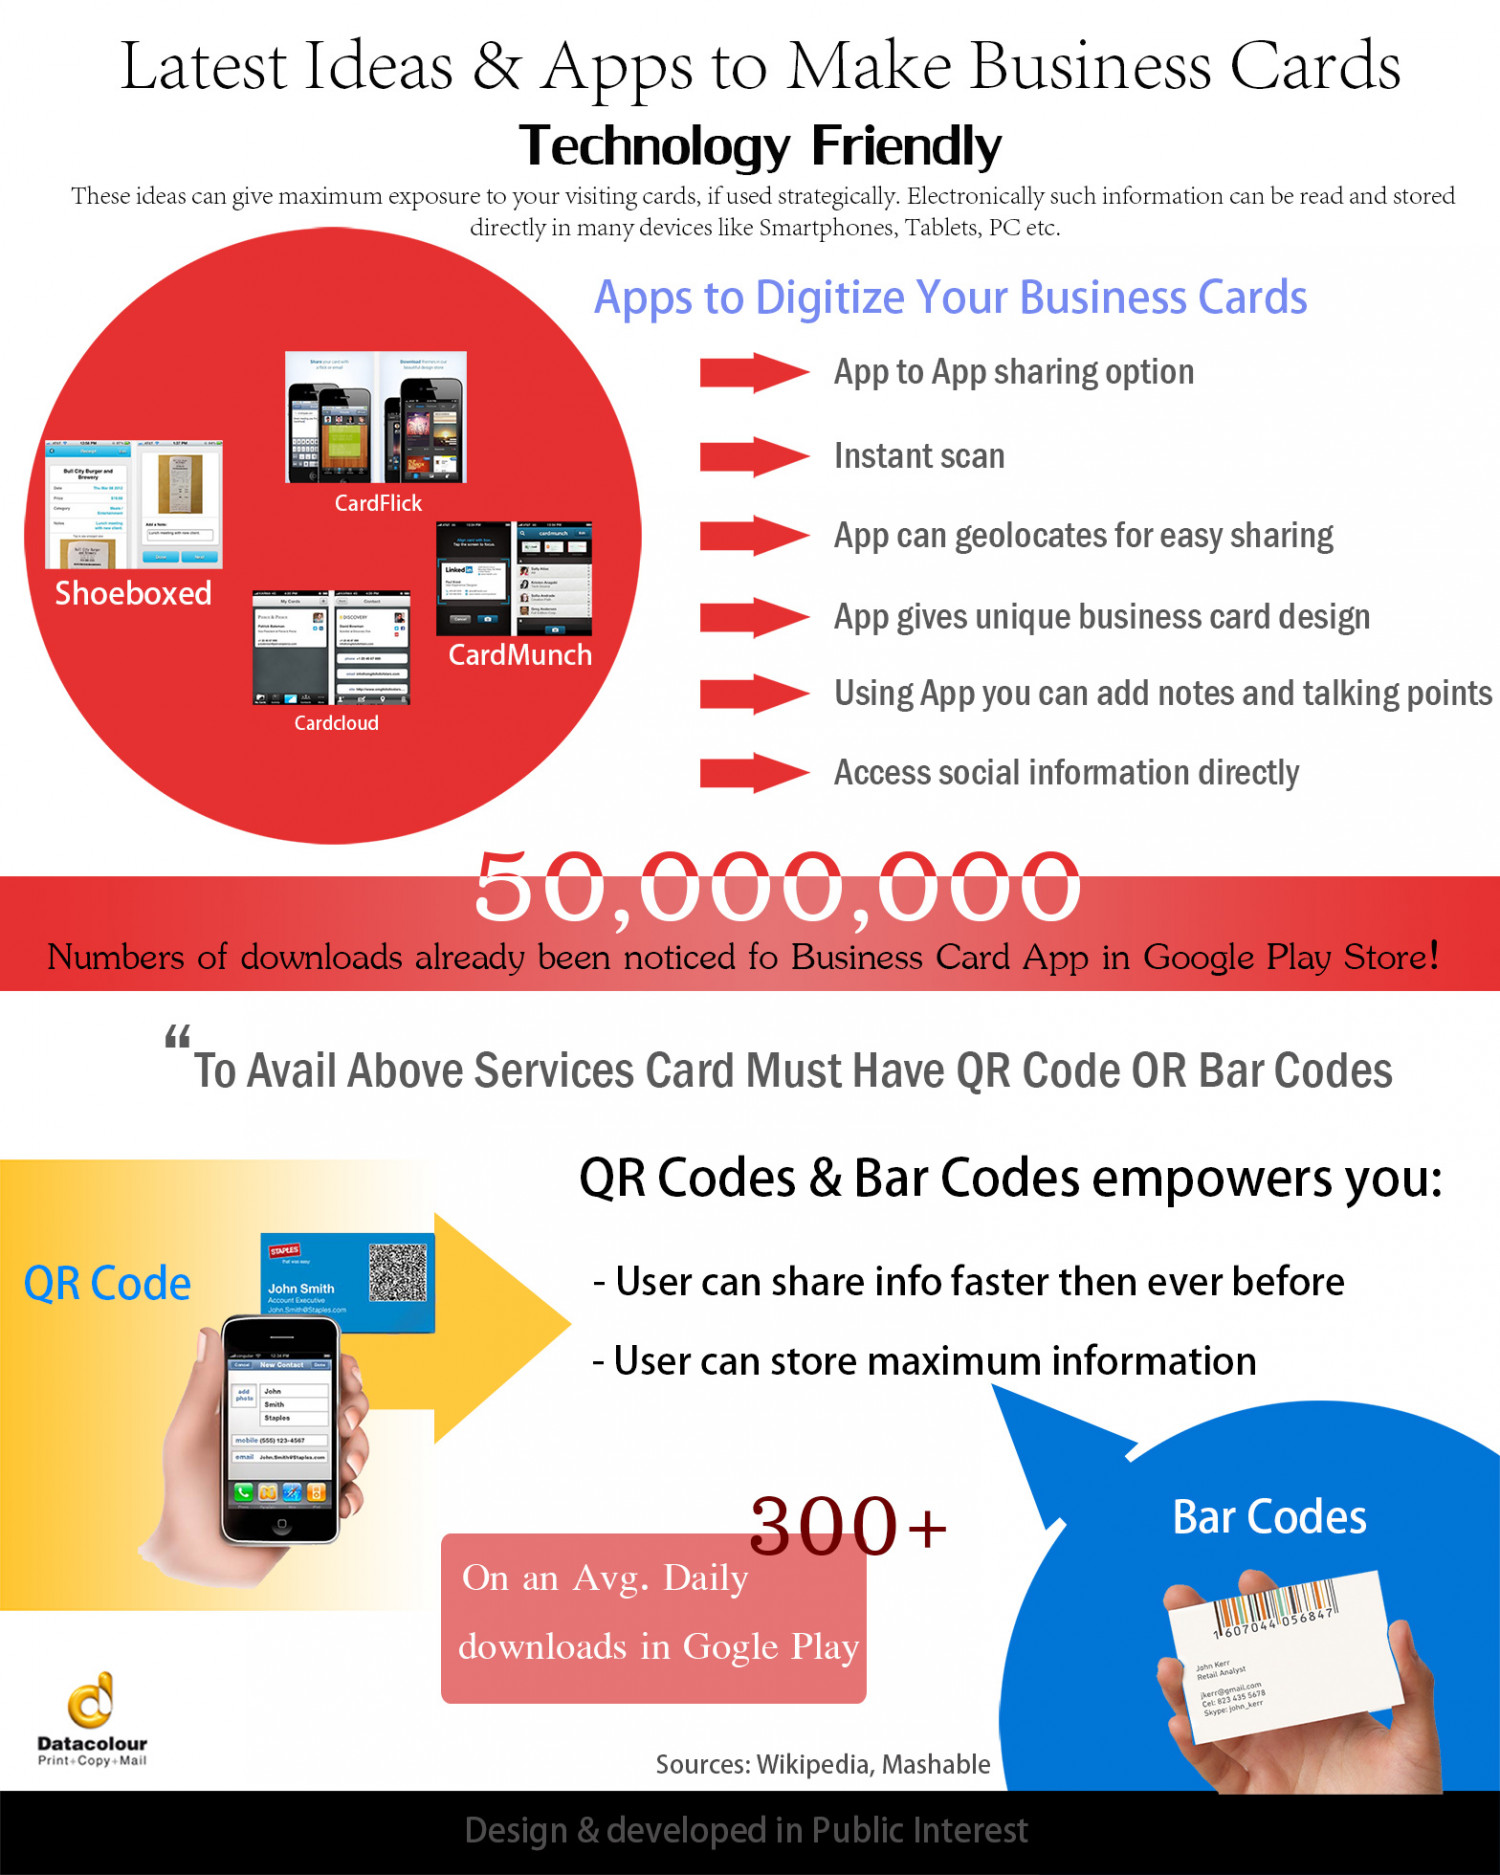 Latest ideas and apps to make business cards technology for App to make business cards